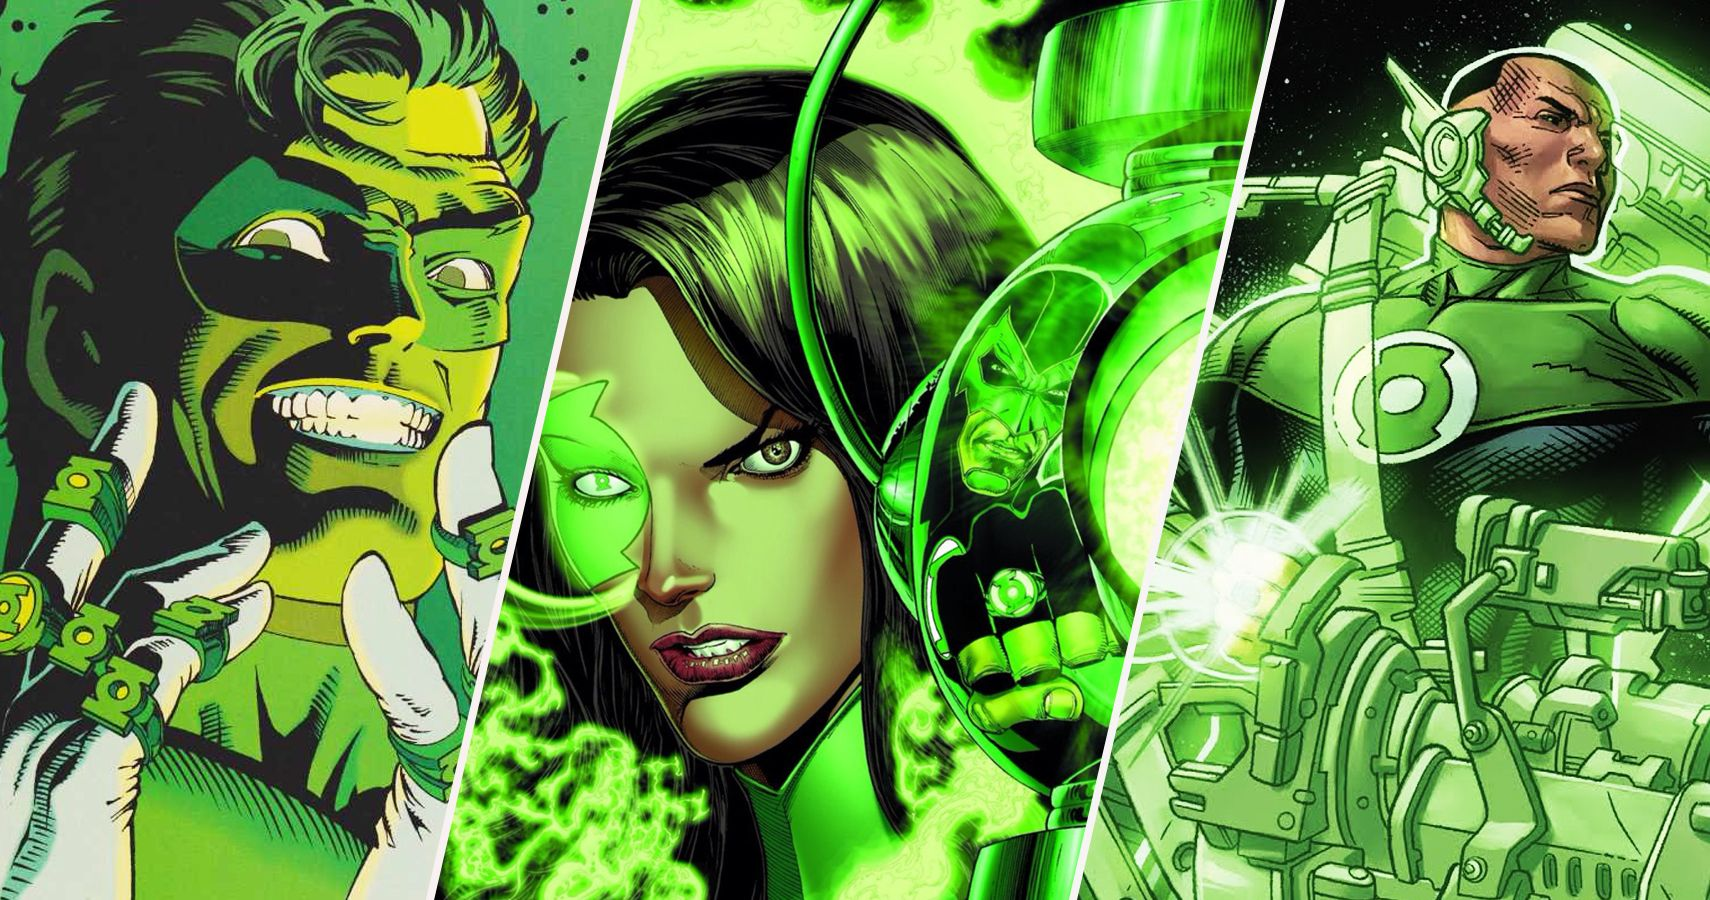 The Myers-Briggs® Personality Types of DC's Green Lanterns | CBR